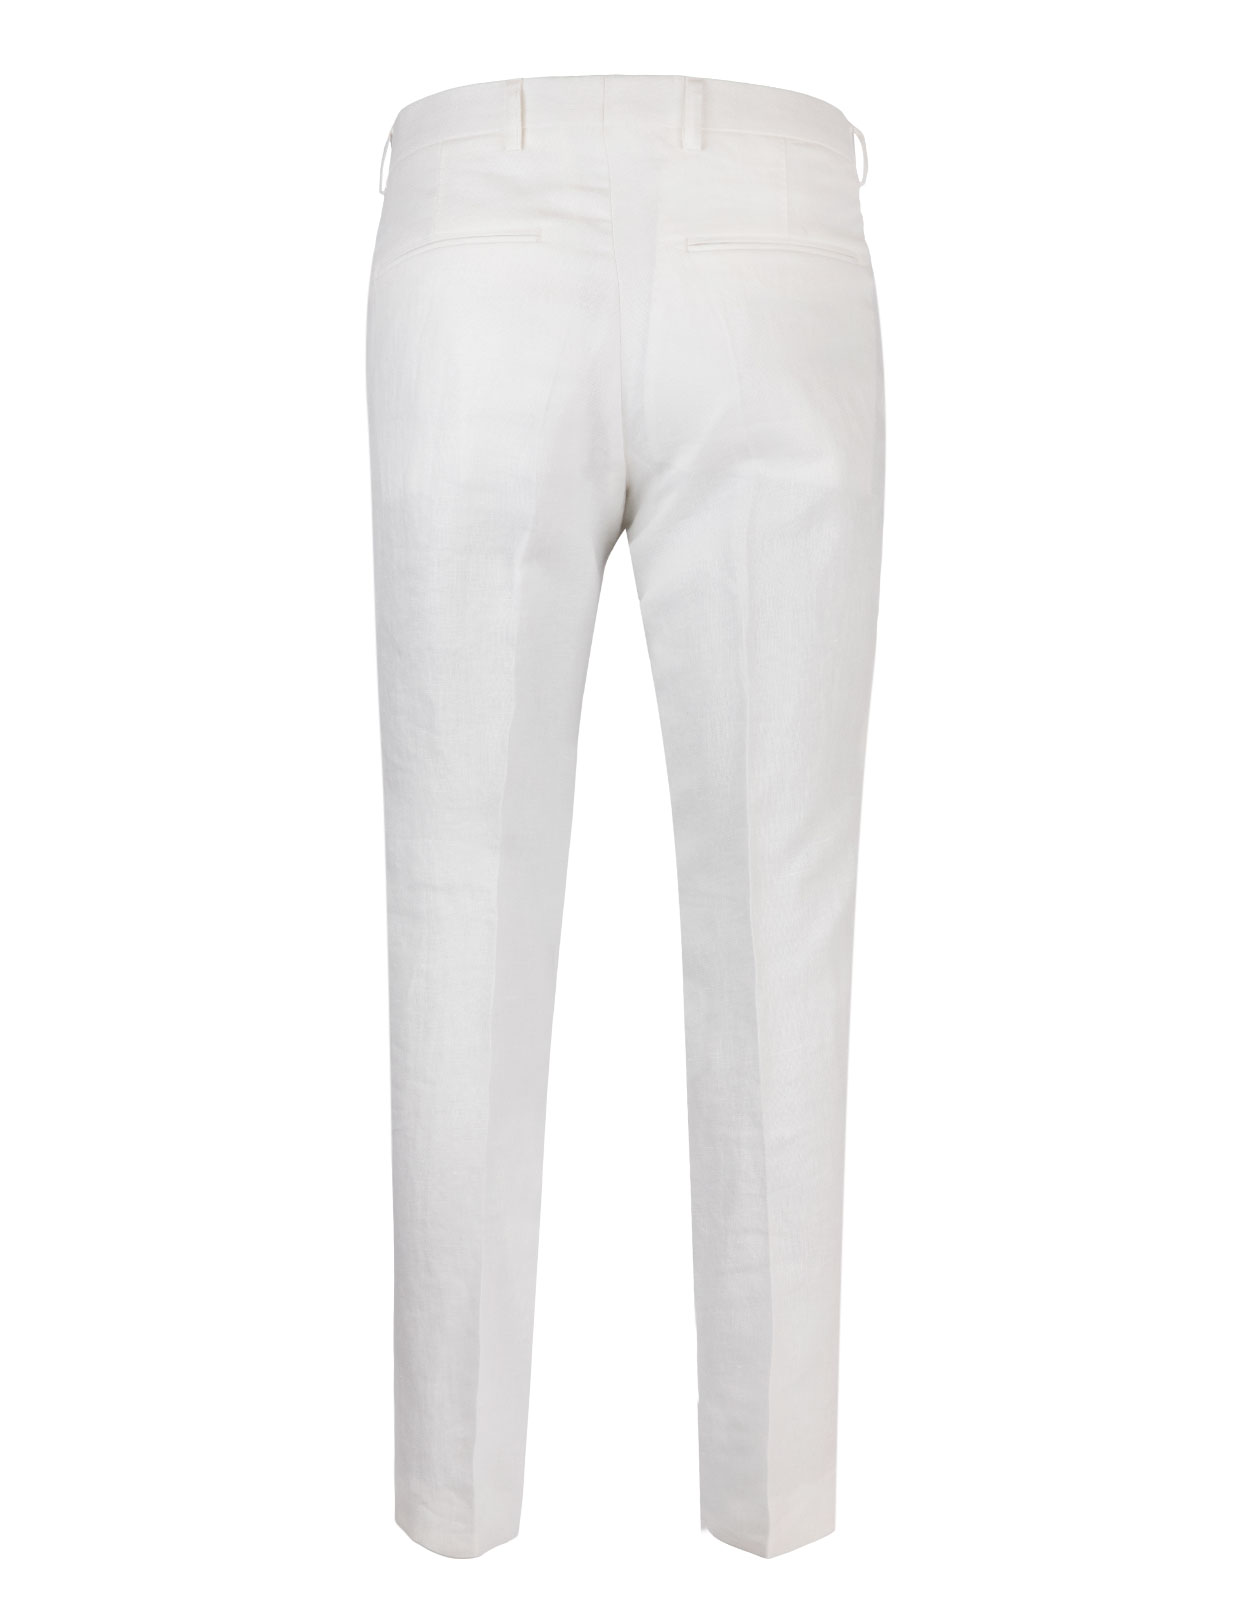 Diego Regular Linen Trouser Mix & Match White